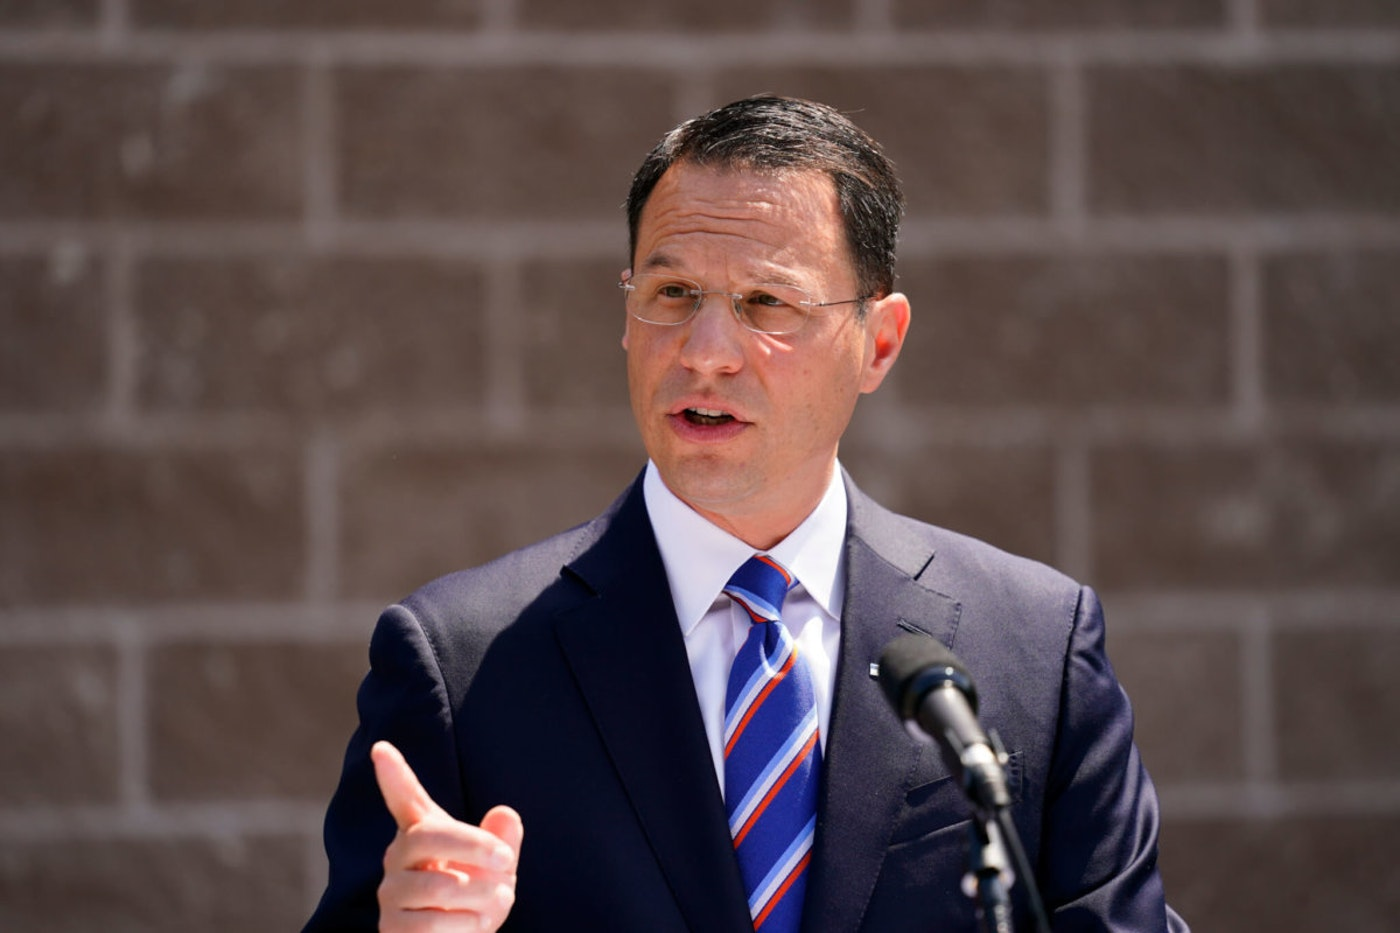 Pennsylvania Attorney General Josh Shapiro speaks with members of the media during a news conference in Darby, Pa., Wednesday, June 2, 2021.  (AP Photo/Matt Rourke)